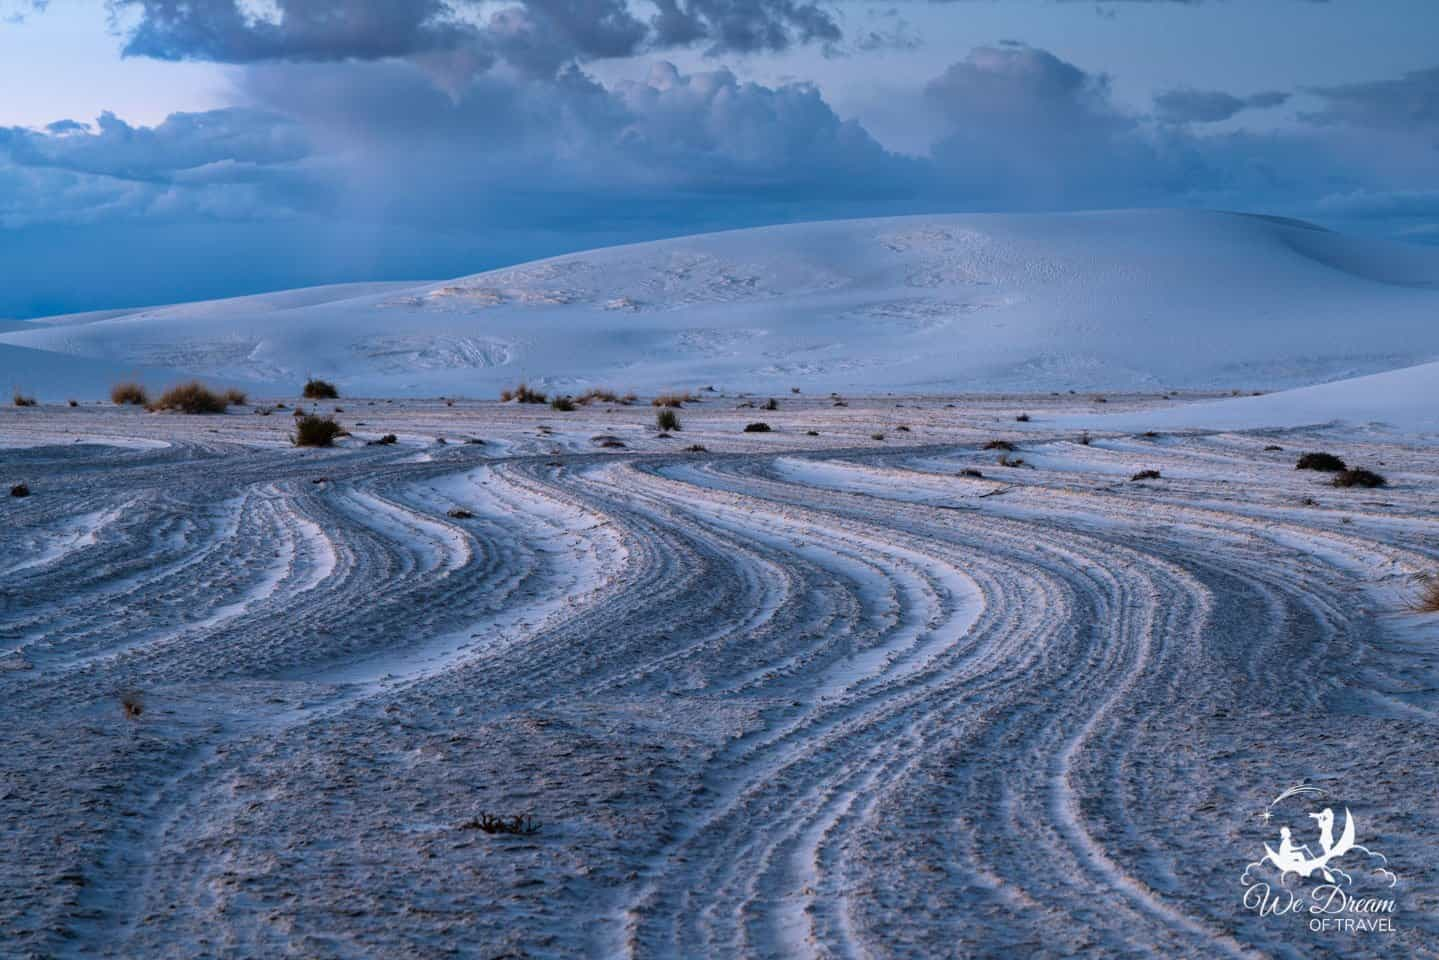 Nautical Twilight photography from White Sands NP.